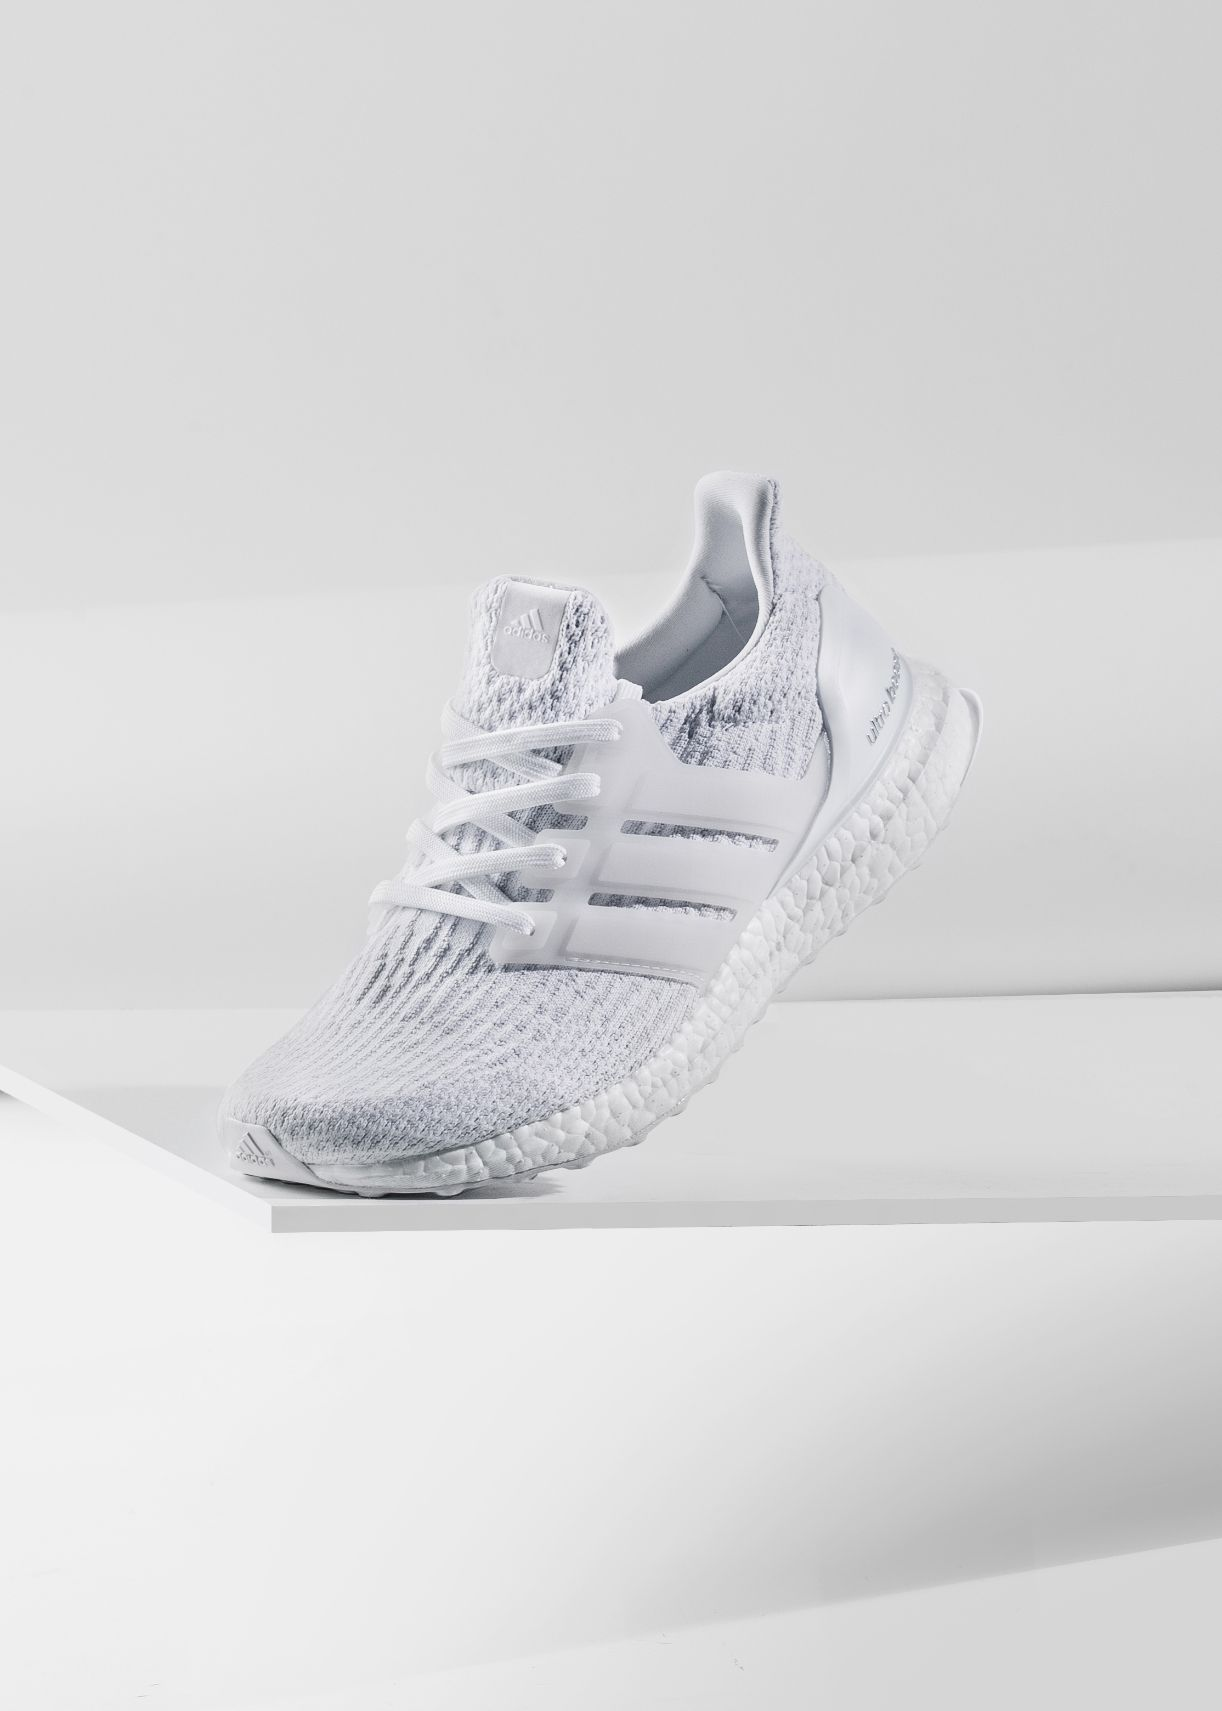 "7edaf8967 Adidas Ultra Boost 3.0 ""Triple White""  Adidas  Ultra  Boost  Primeknit   Fashion  Streetwear  Style  Urban  Lookbook  Photography  Footwear   Sneakers  Kicks ..."